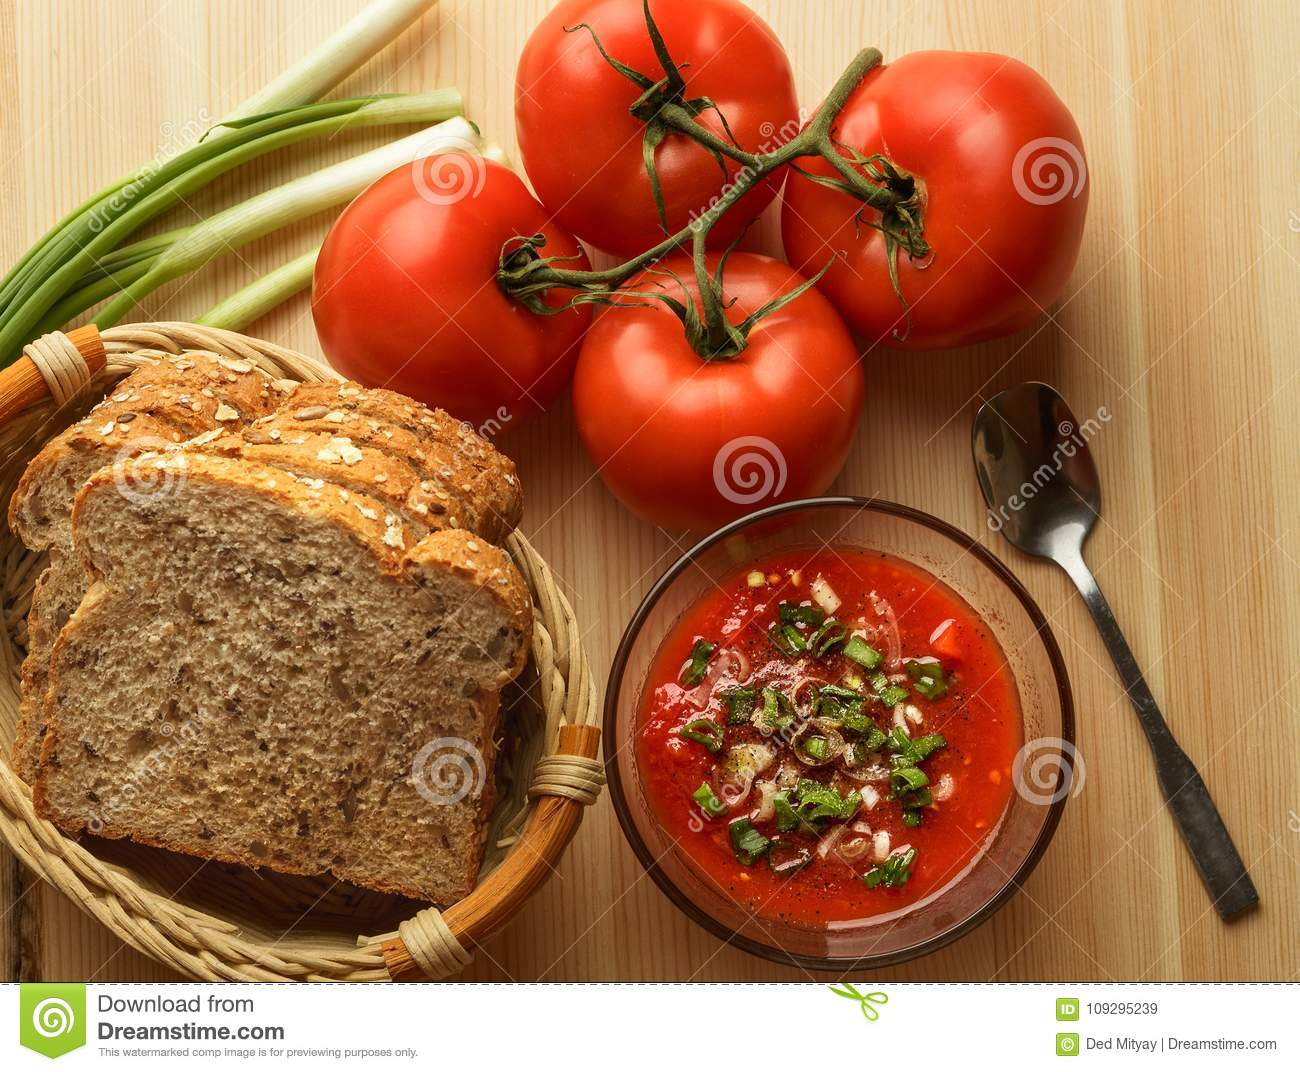 Tomato sauce in glass bowl, fresh bread, onion on wooden table, sauce ingredients for homemade vegetarian food, top view